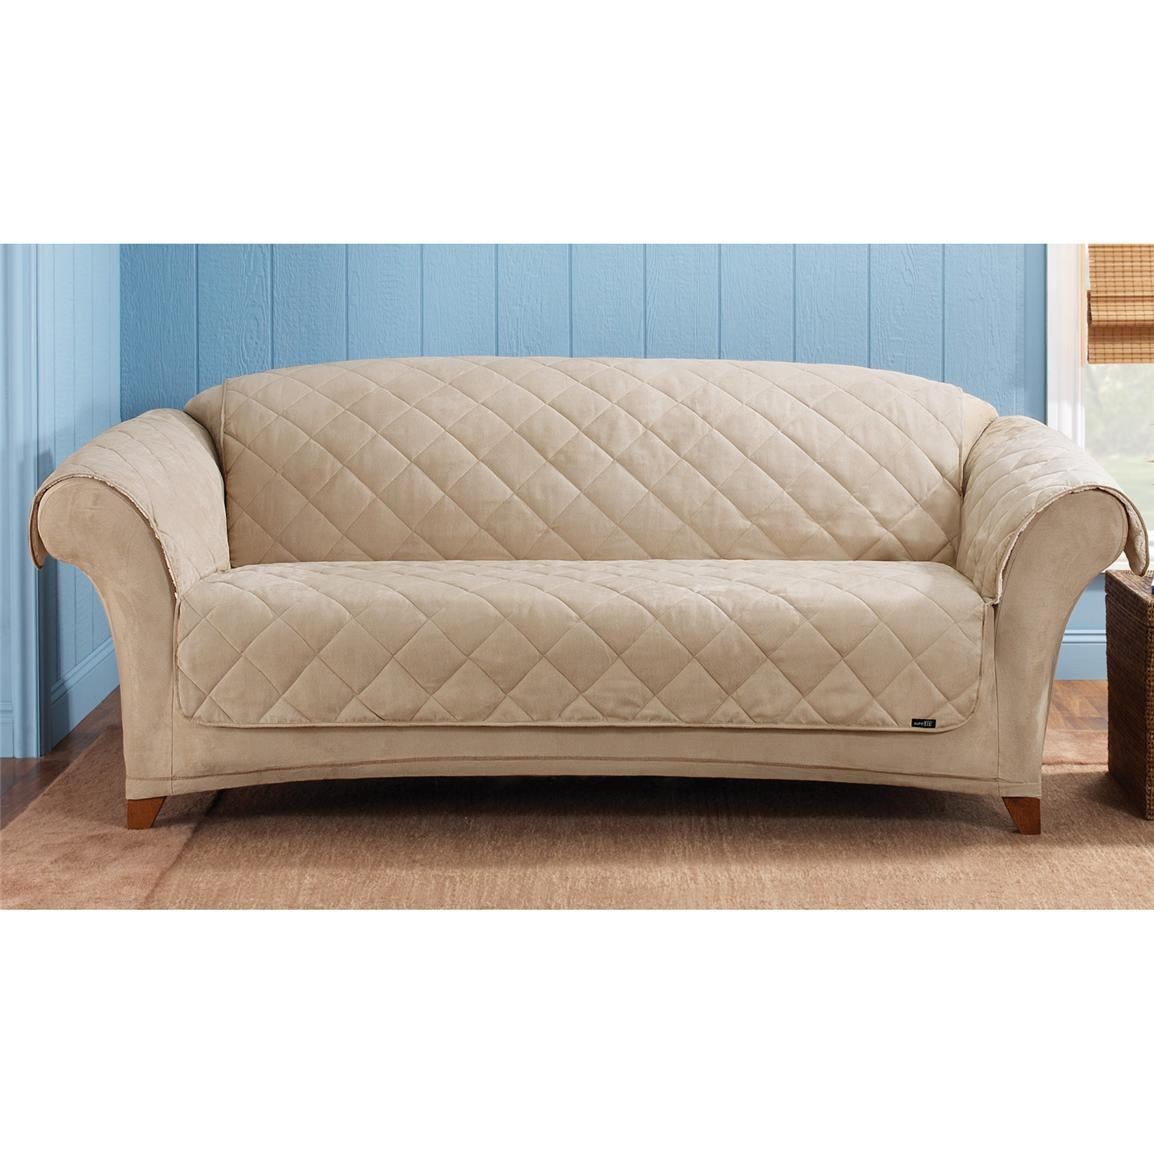 Furniture: Sofa Covers For Recliner Sofas | Sofa Recliner Covers In Covers For Sofas (View 11 of 20)